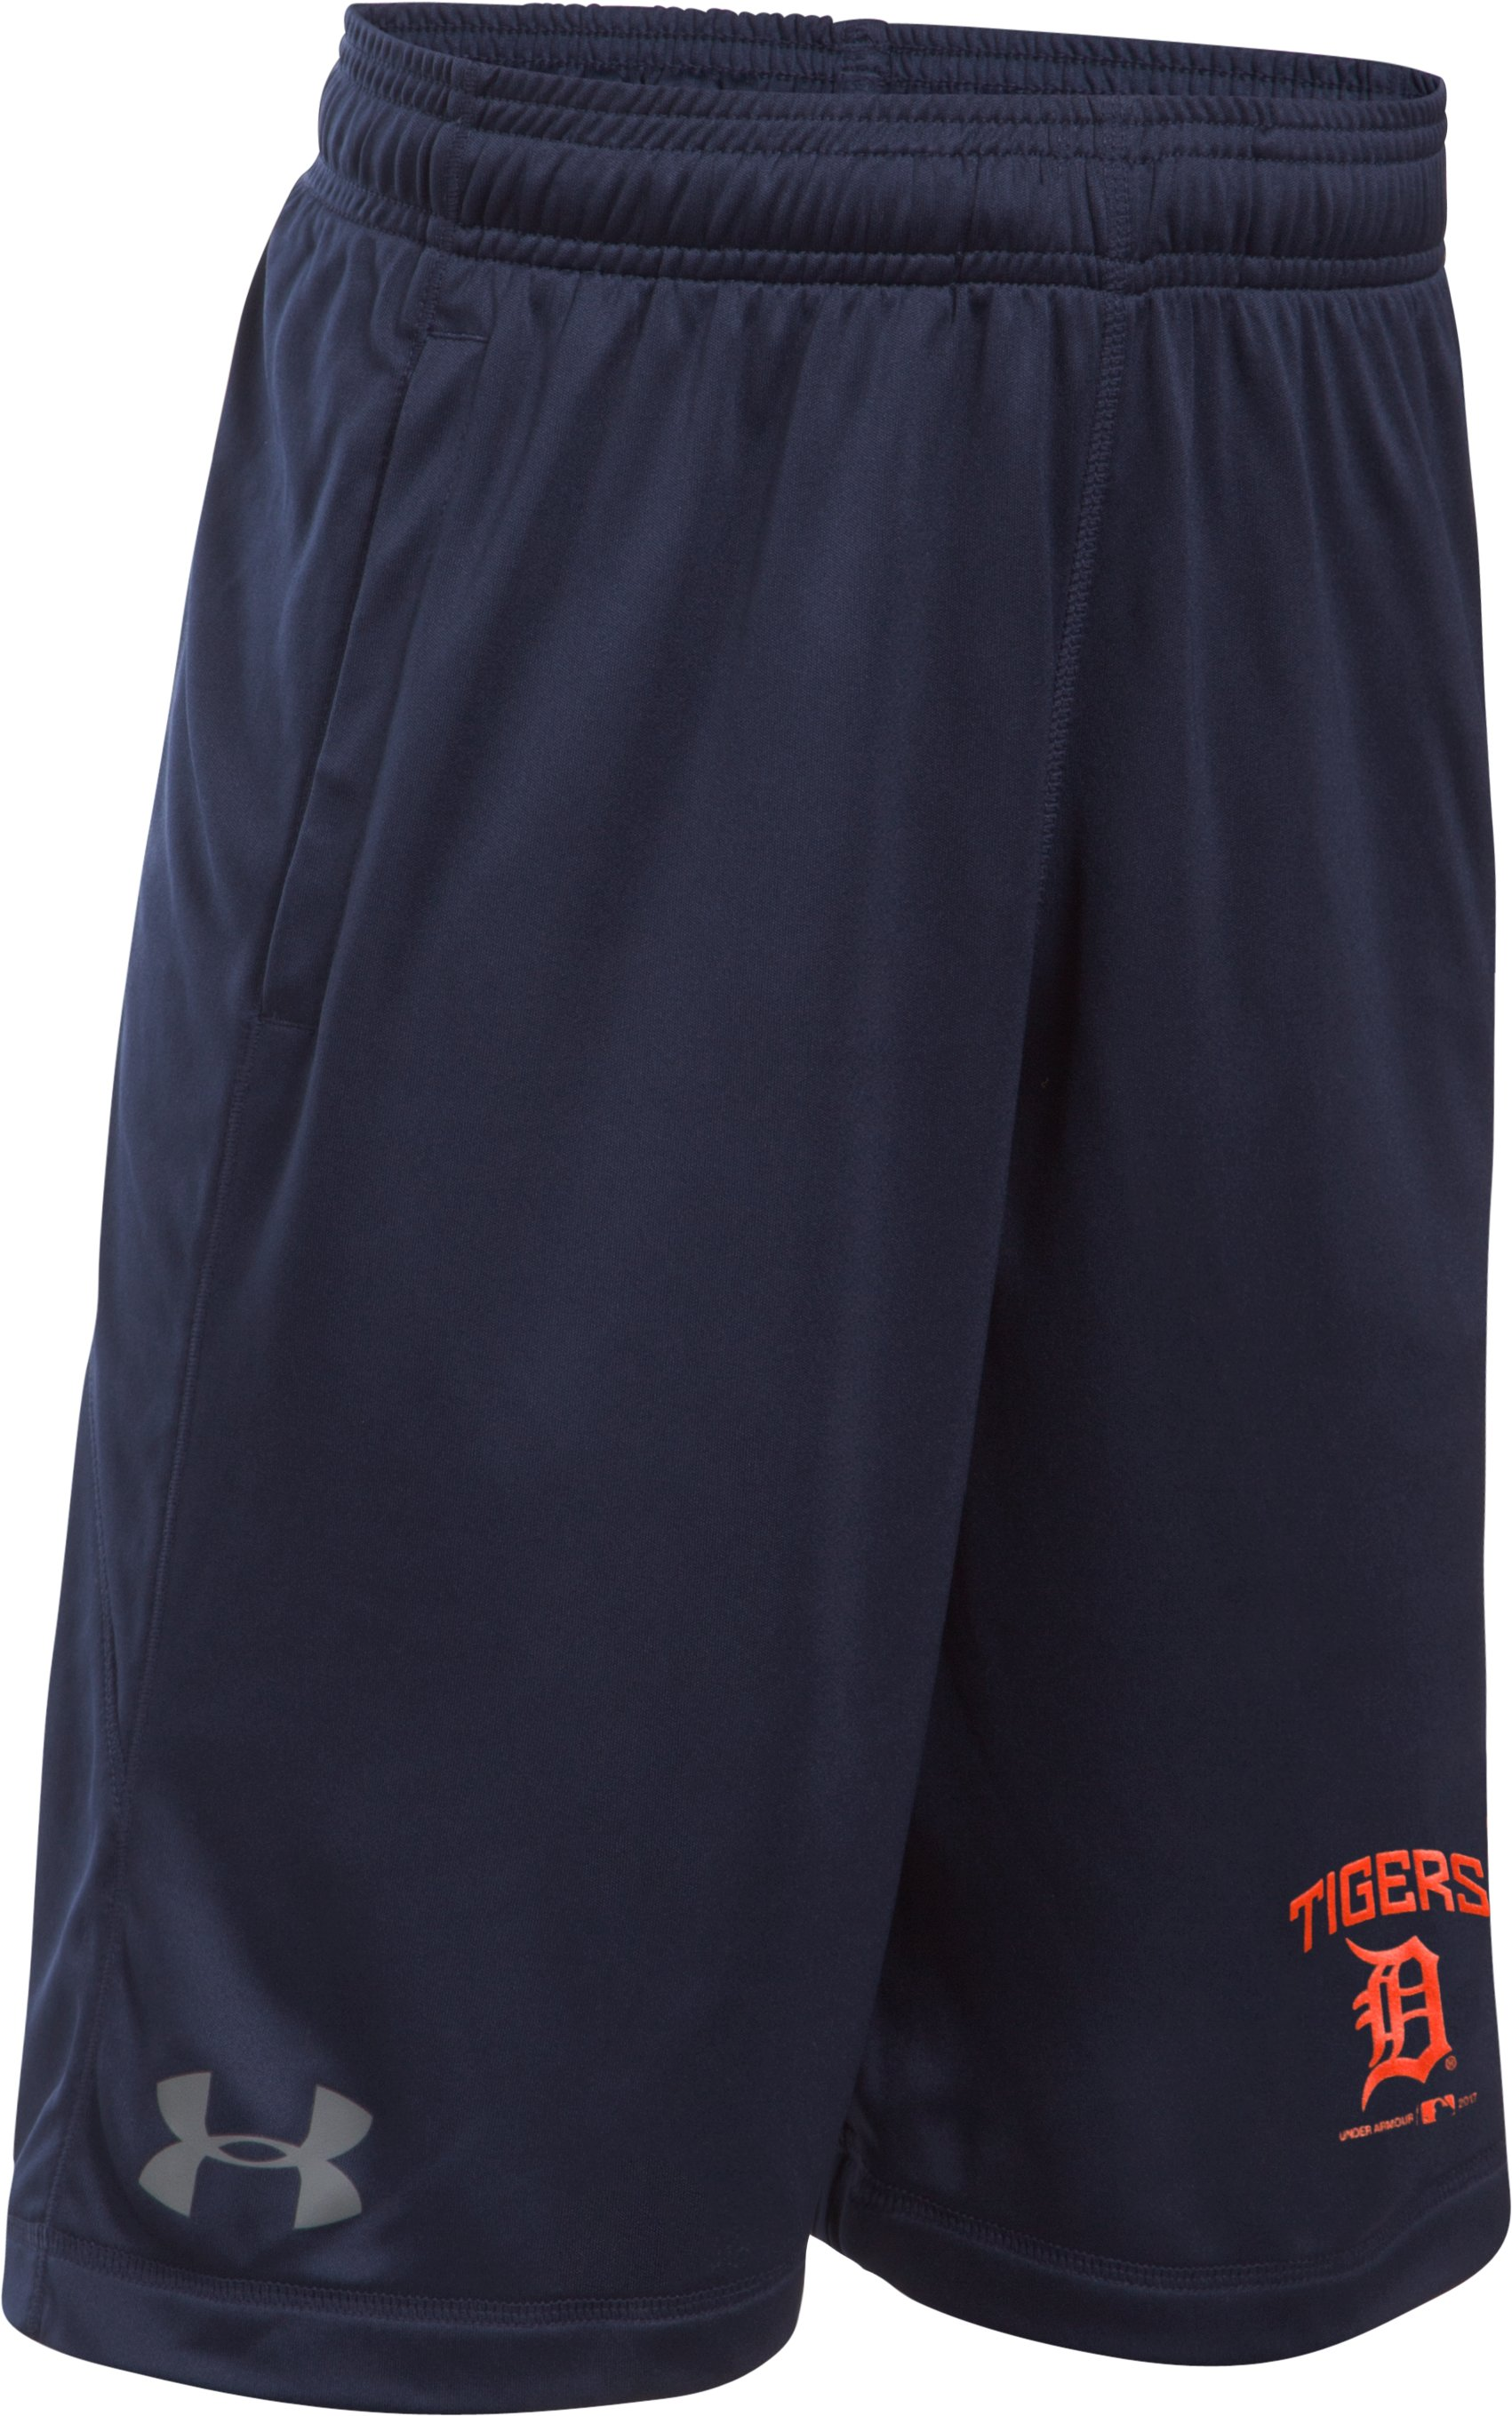 Boys' Detroit Tigers Training Shorts, Midnight Navy, undefined